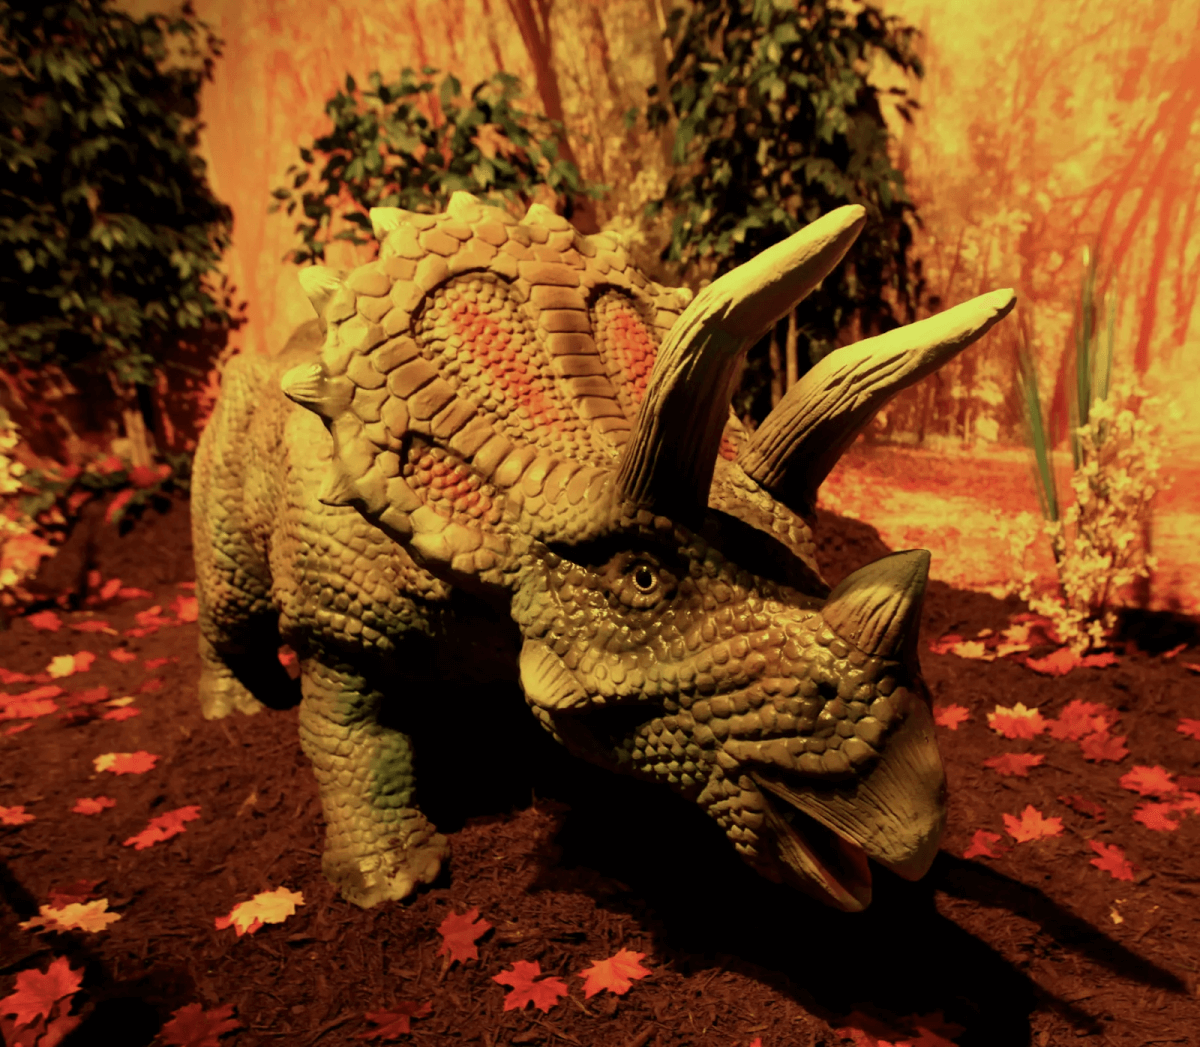 Triceratops model at Dino Park - Myrtle Beach